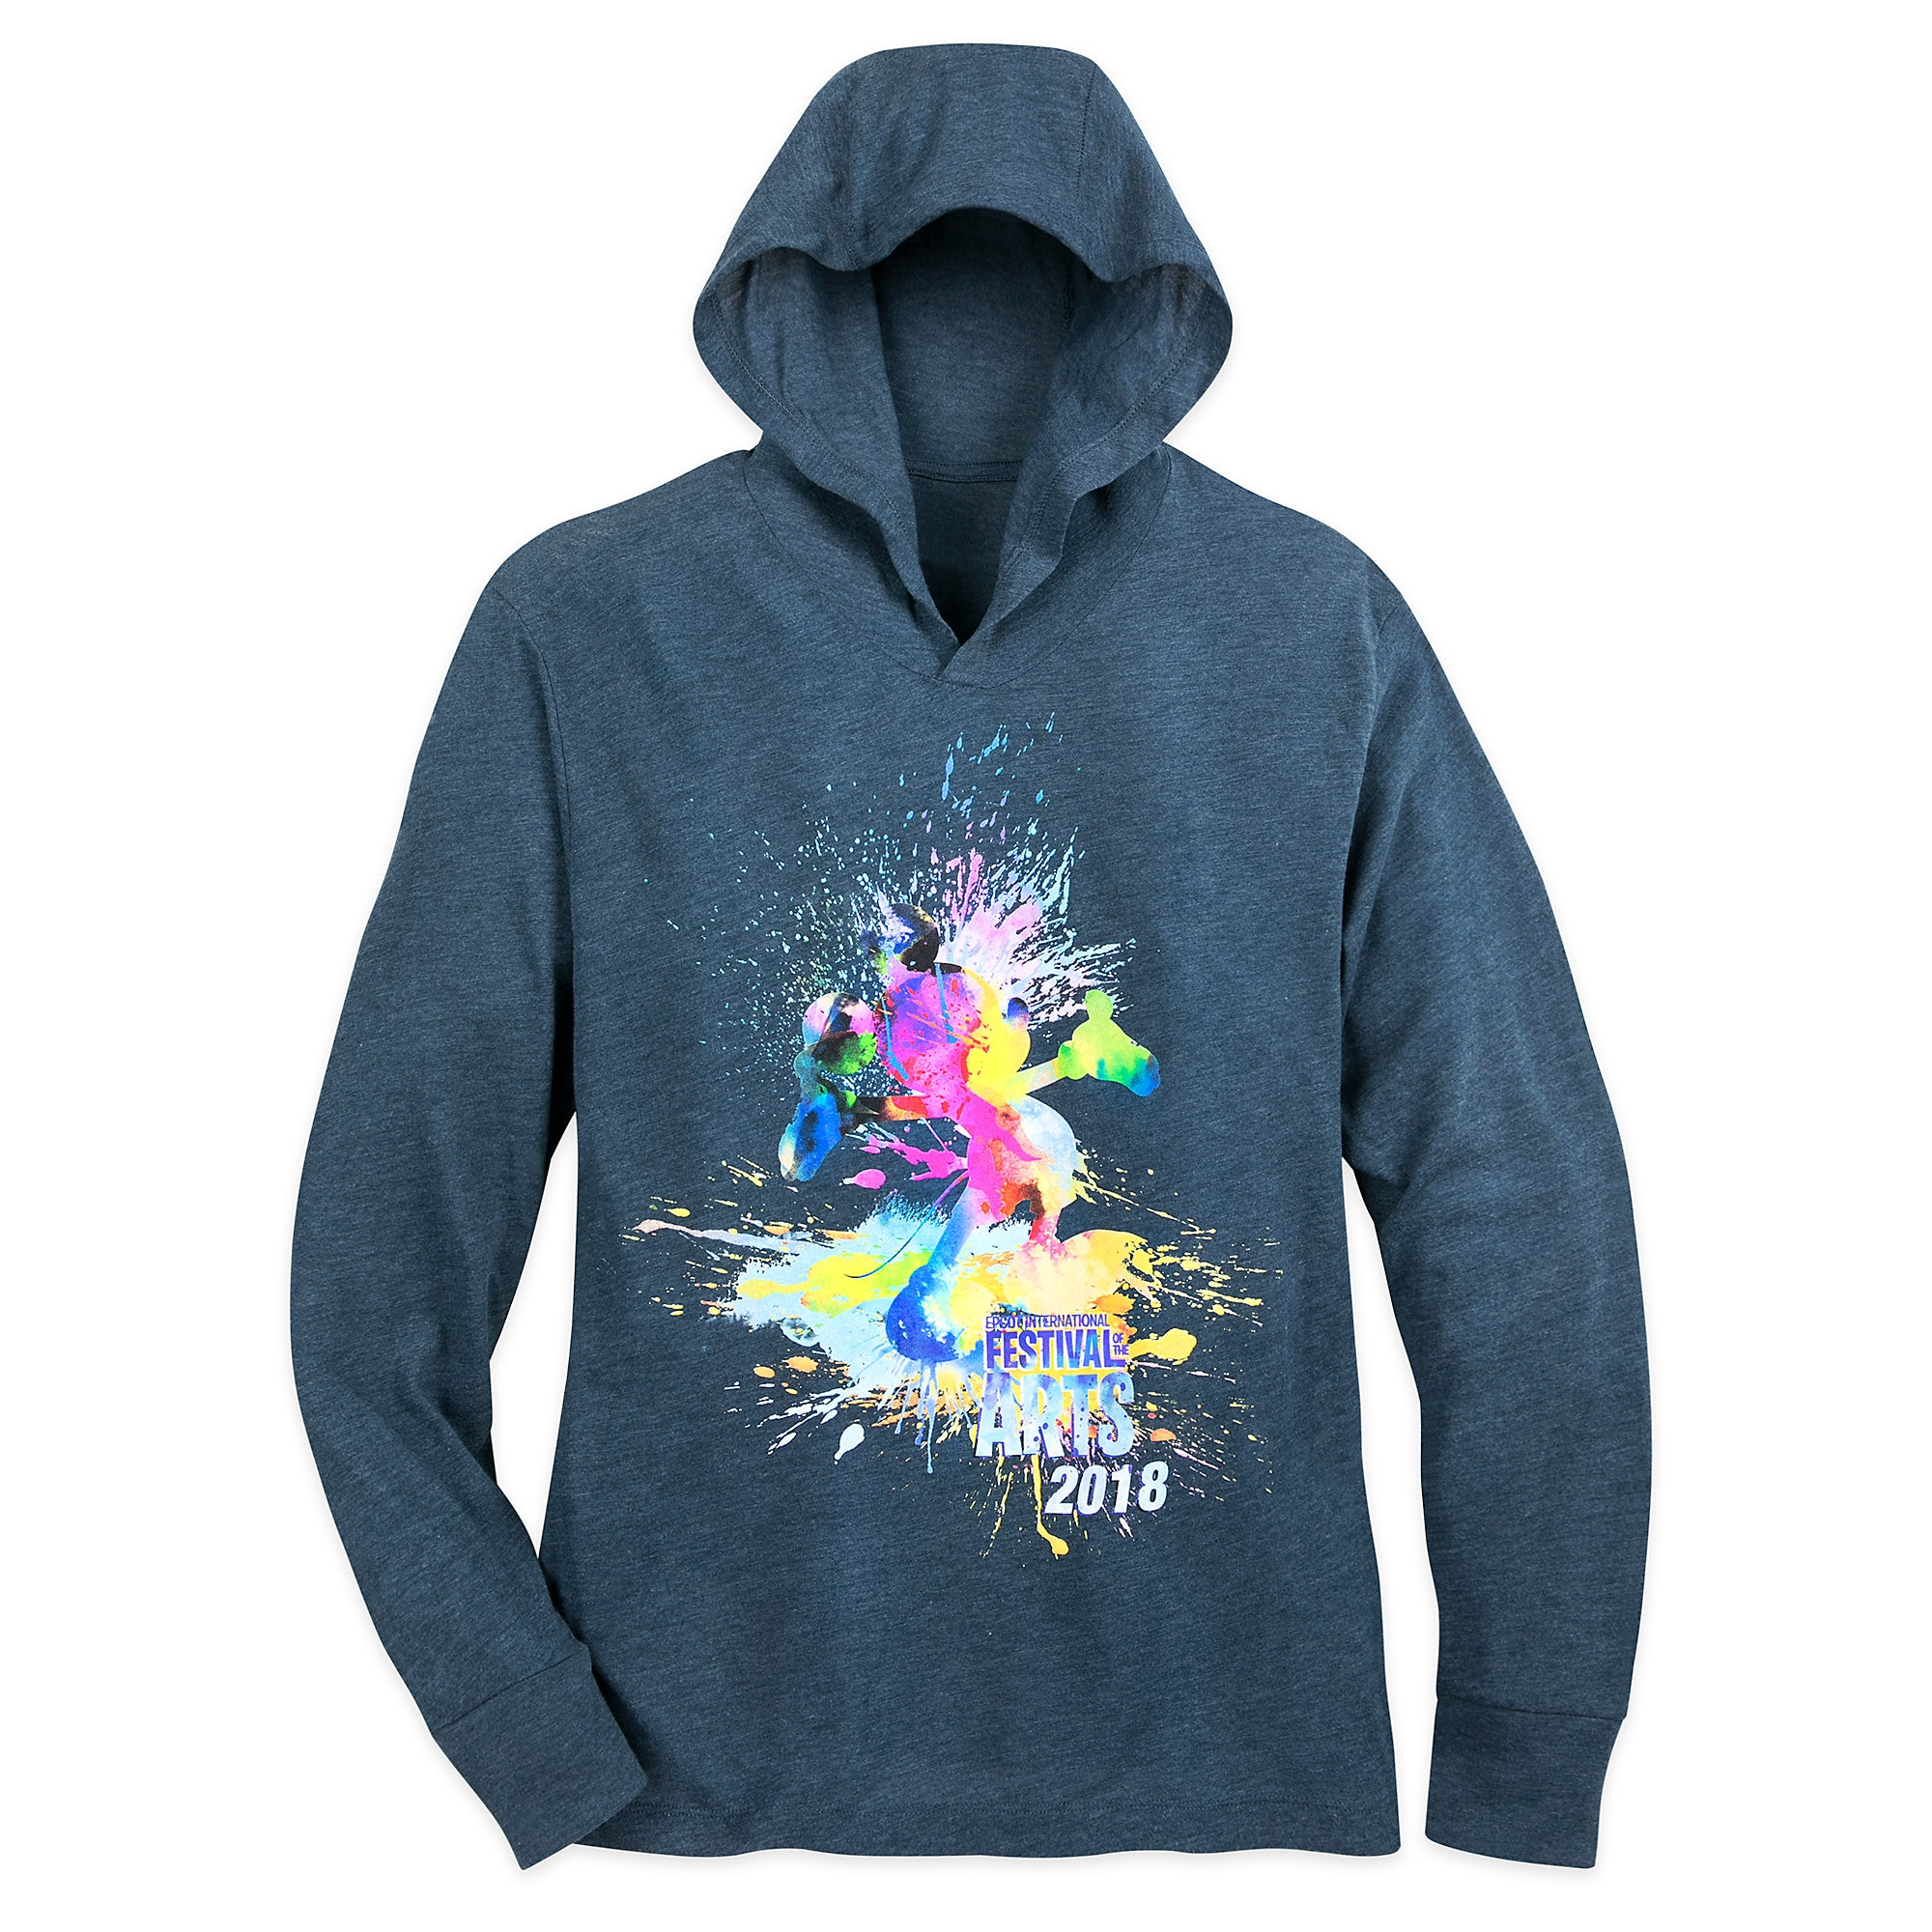 Mickey Mouse Epcot International Festival of the Arts 2018 Hoodie for Adults